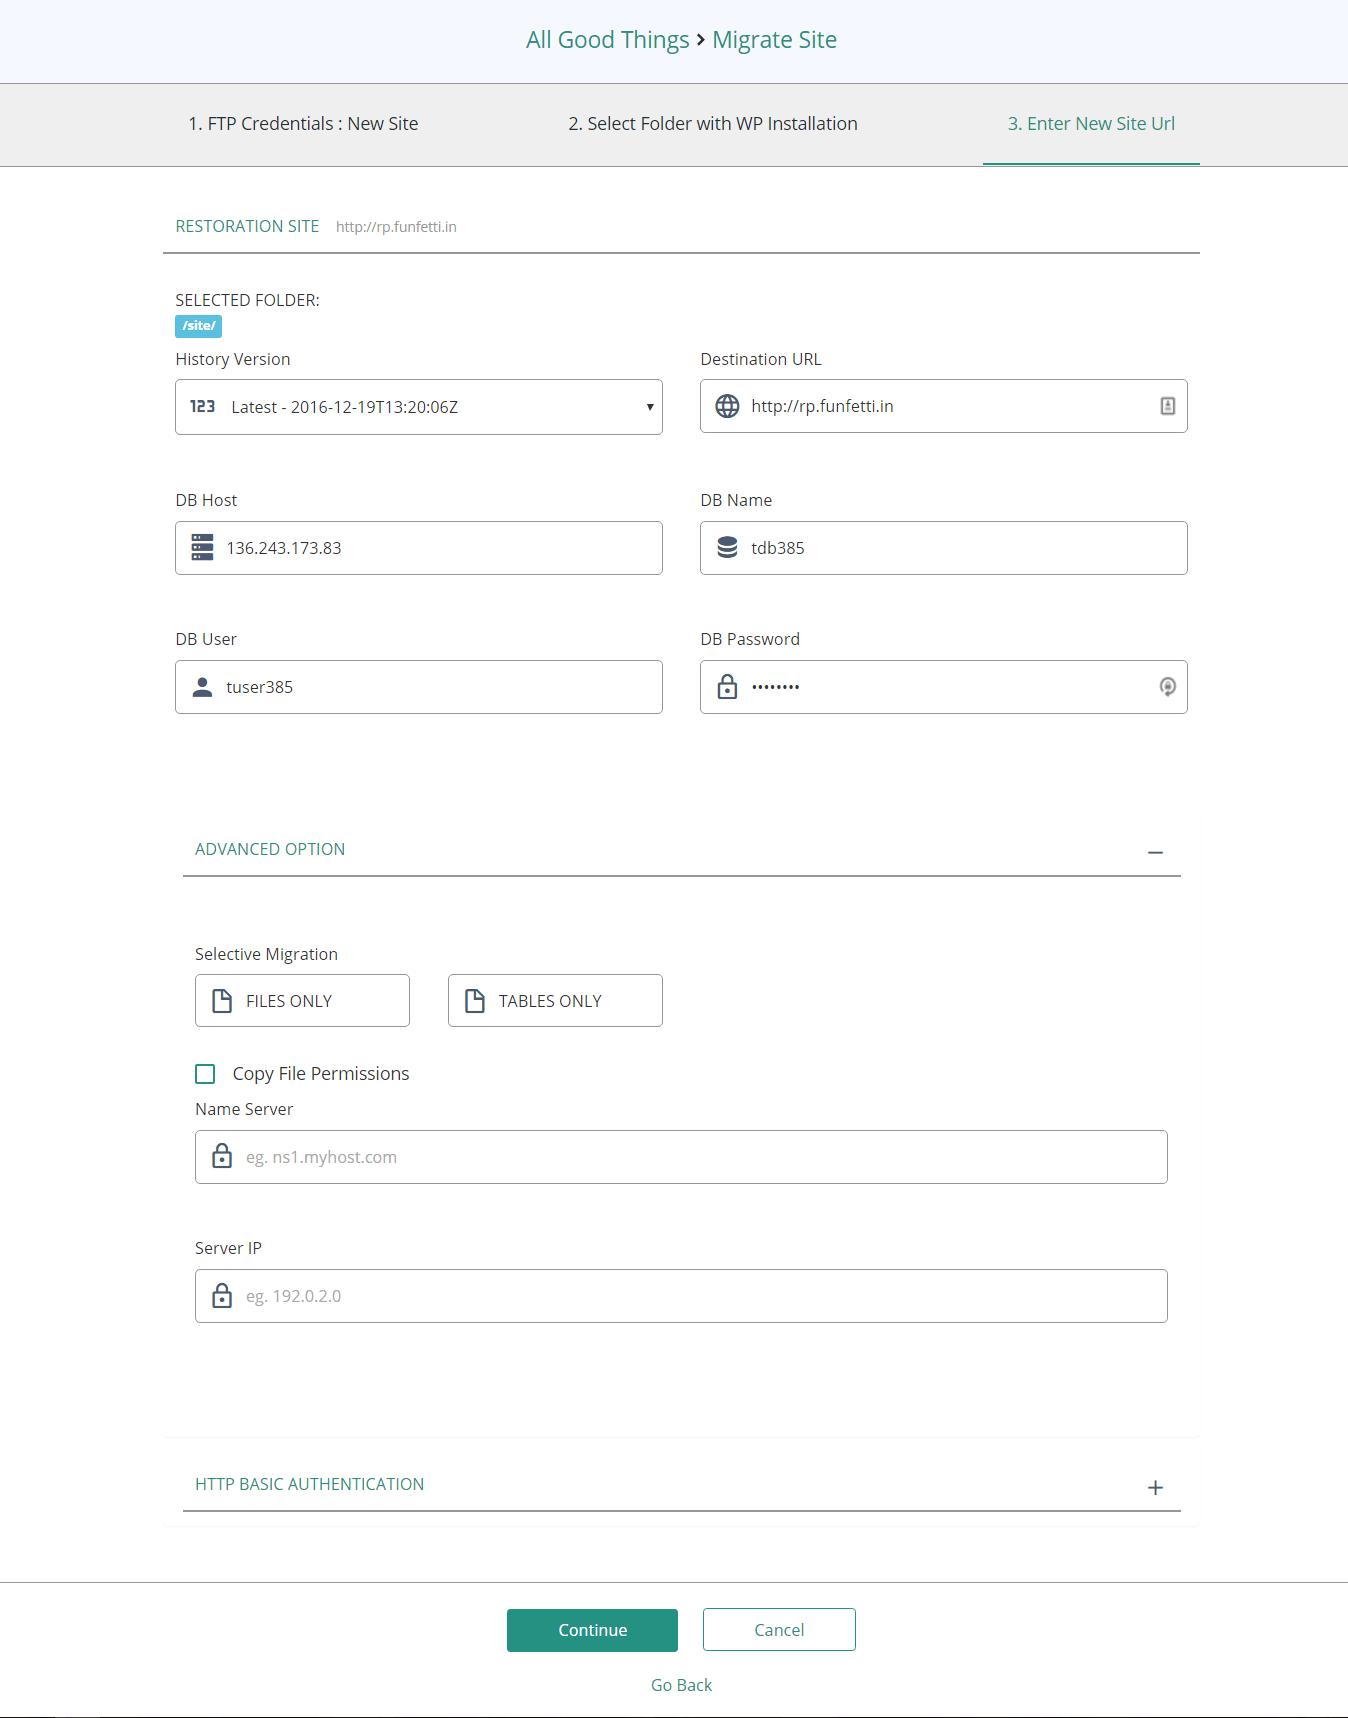 This form lets you choose what to move to the new destination, and helps prevent downtime